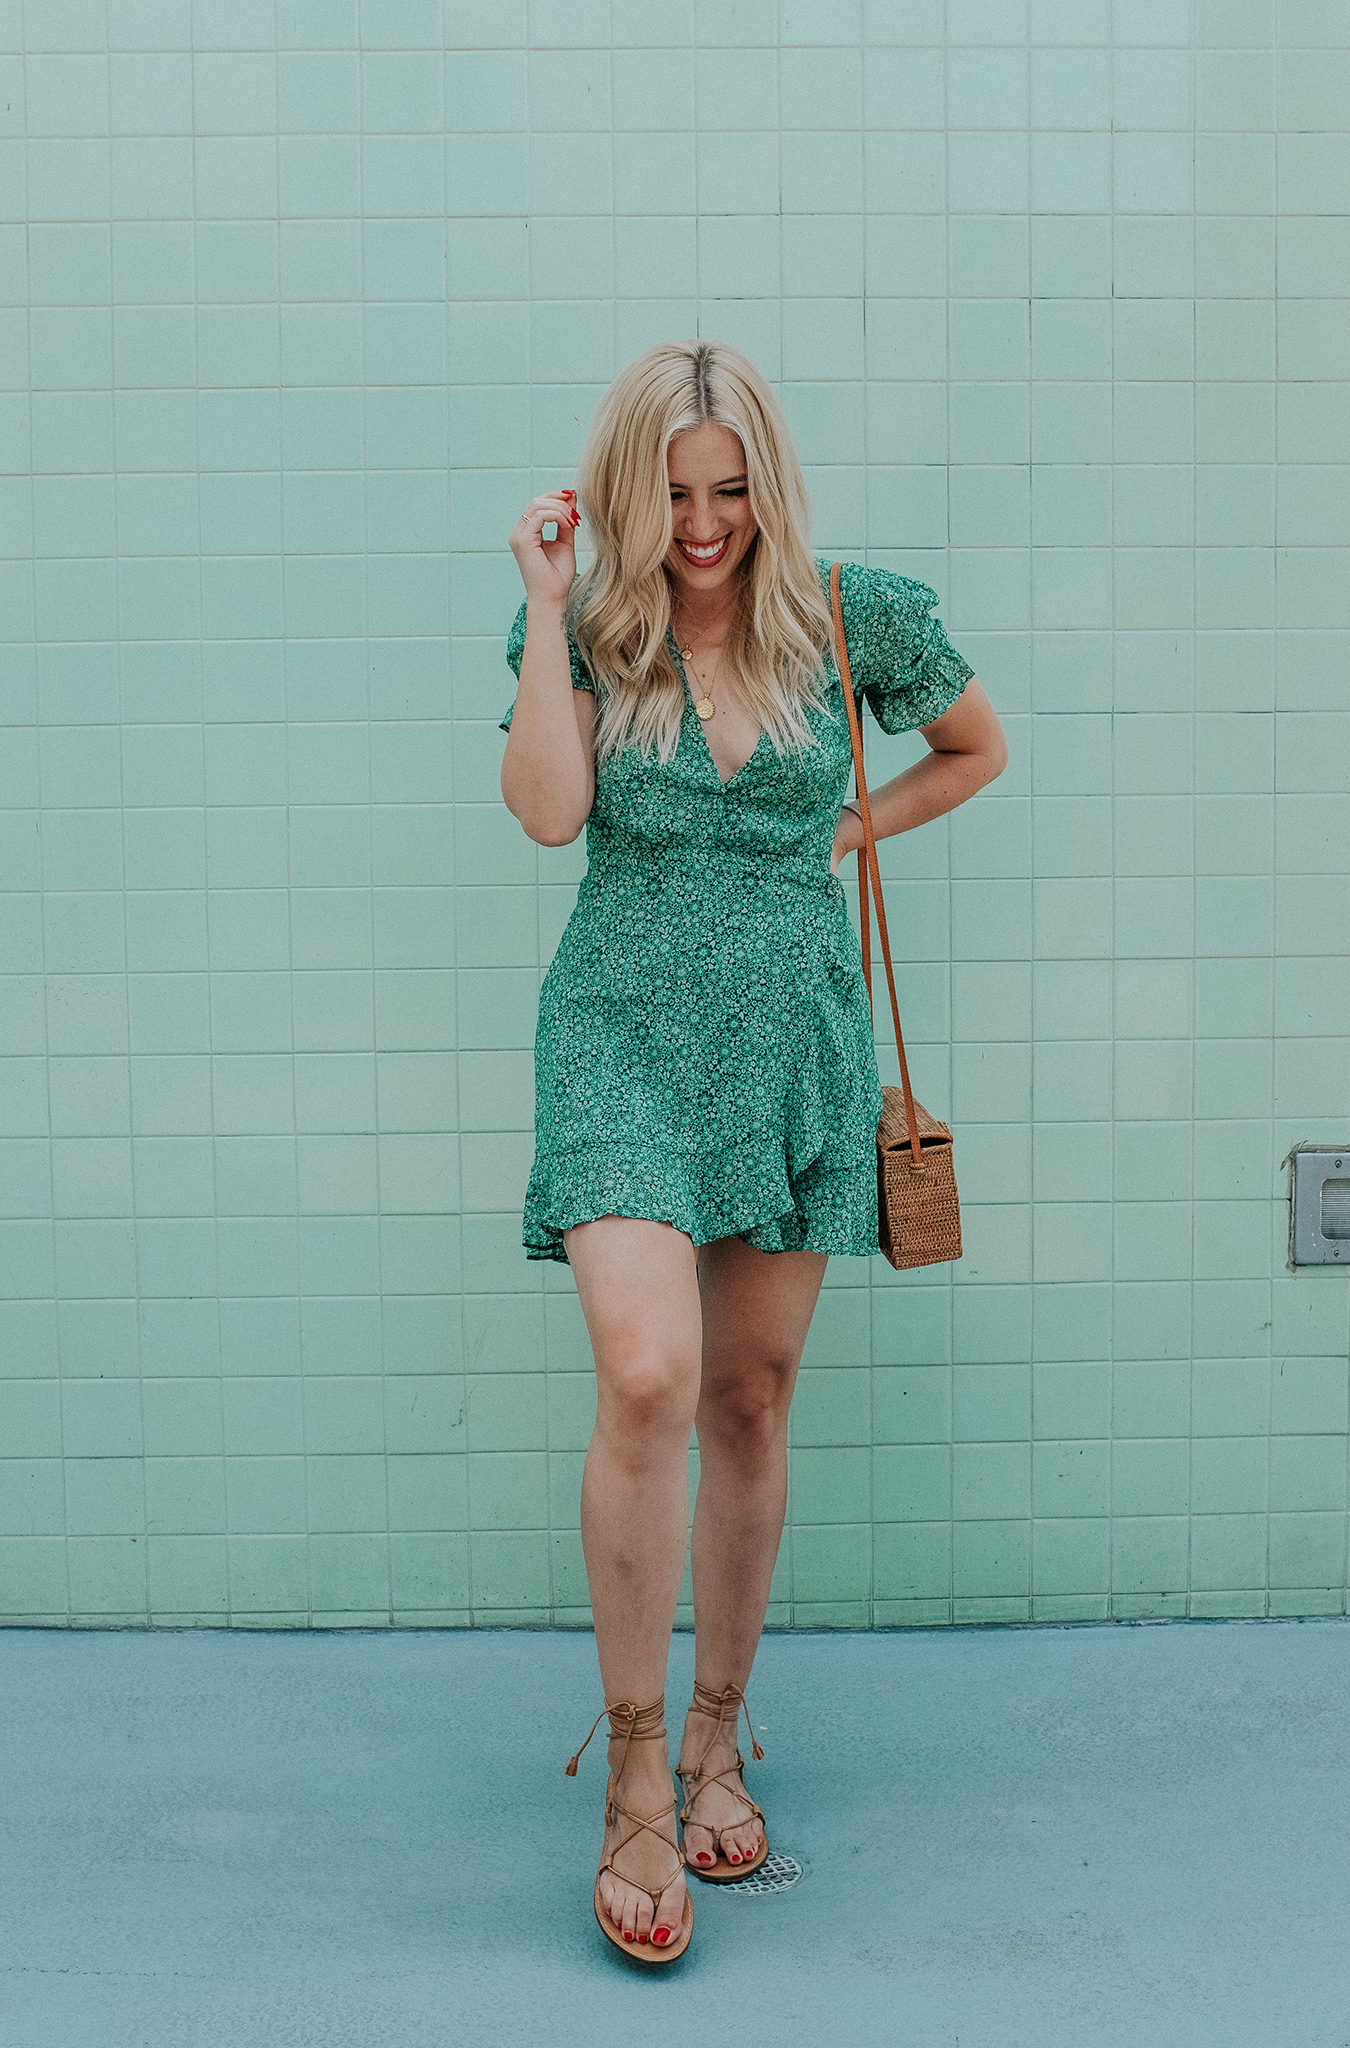 woman wearing green dress with puff sleeves, flat sandals, and sling bag